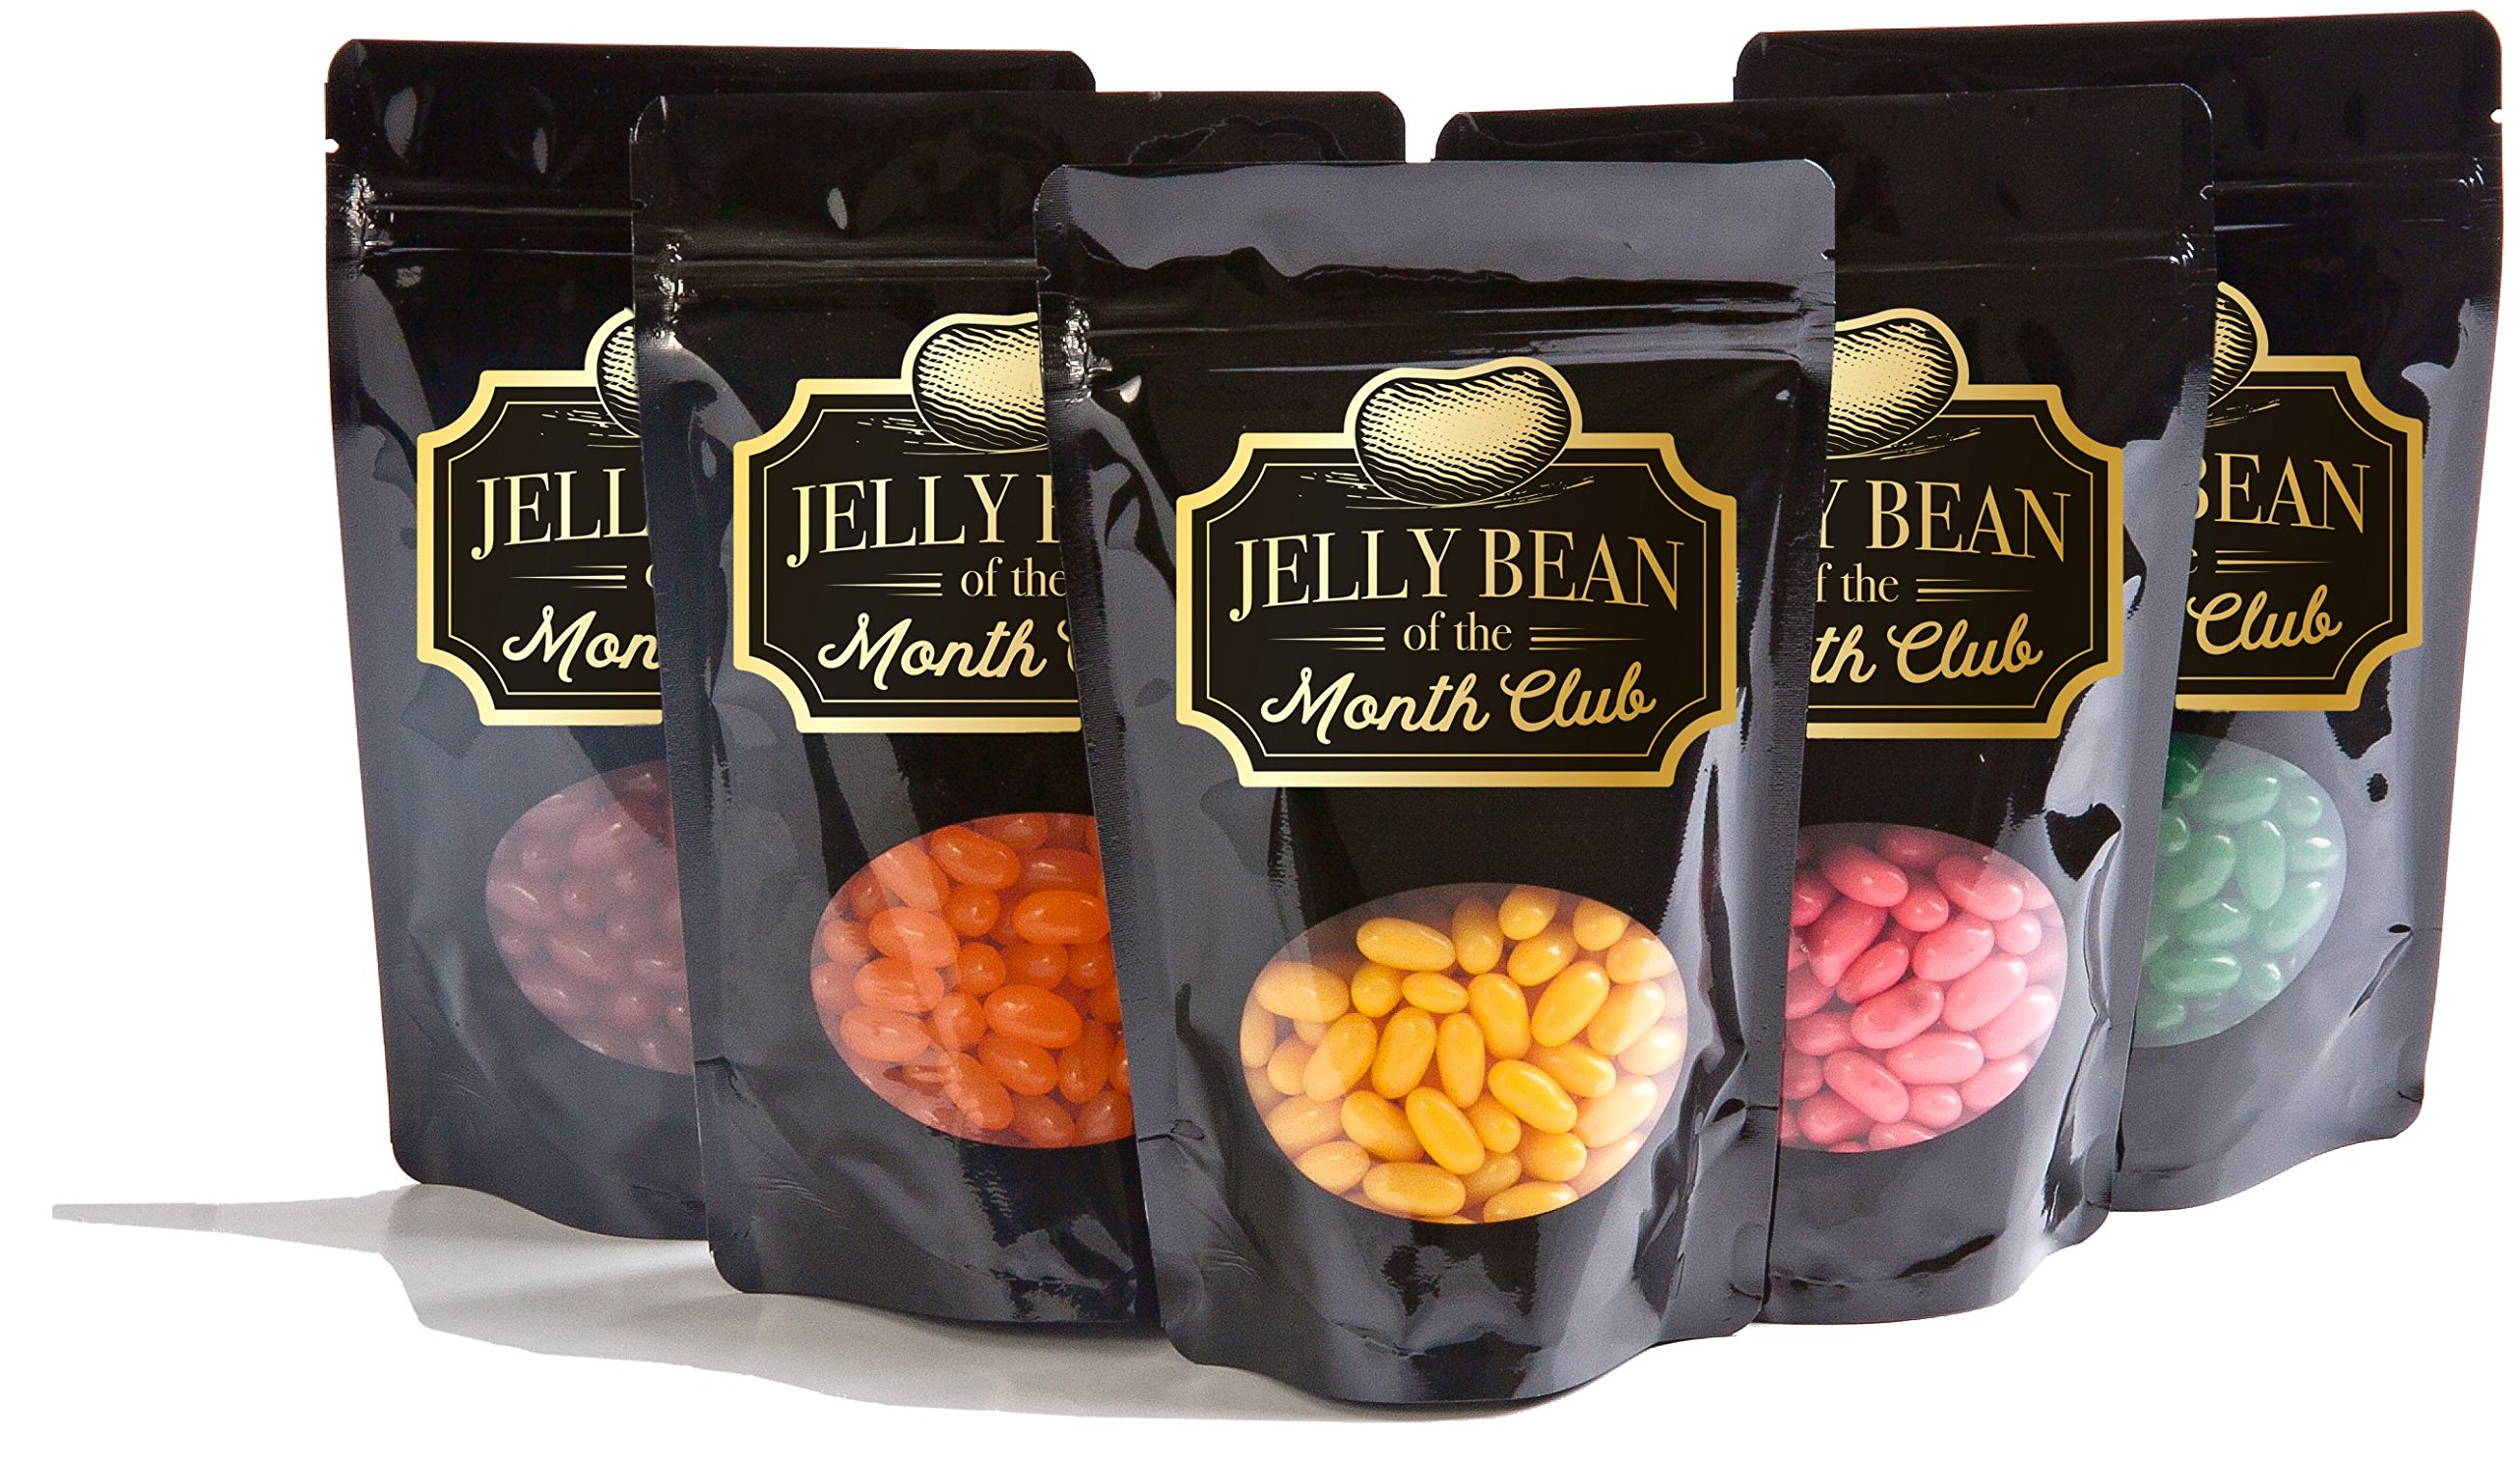 Jelly Bean Of The Month Club Featuring David Murphy Gourmet Jelly Beans - 6 Month Subscription, 2 Bags of Jelly Beans Per Month